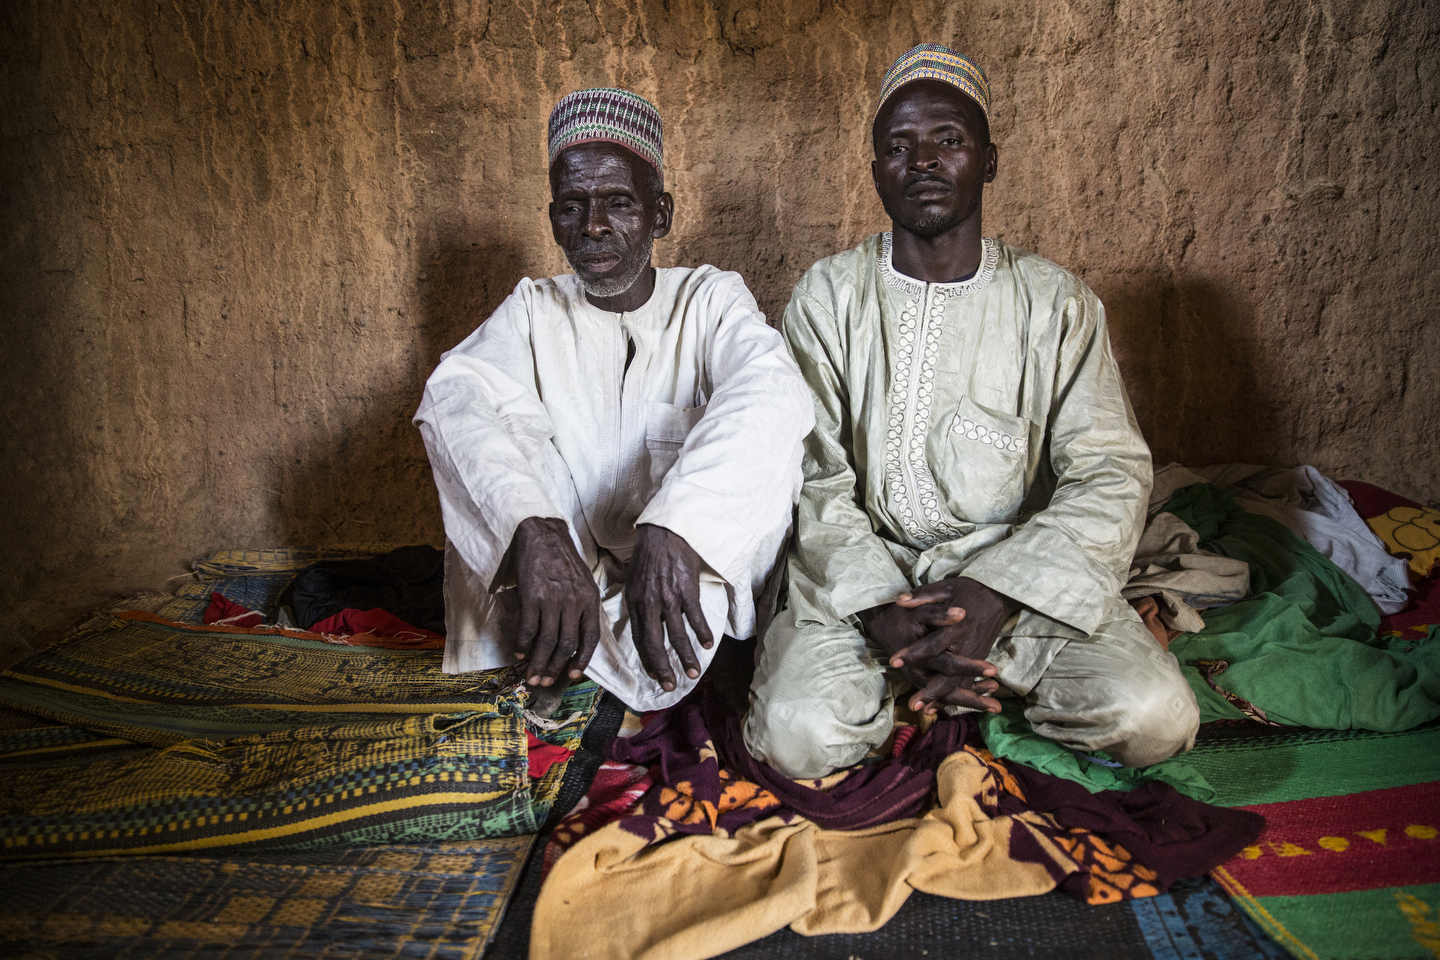 There, we met Umaru's brother and his father. In a dark room lent to us by a kind neighbor so we didn't have to talk about sensitive things out on the street, they told us of how much time and money Umaru had invested in the girl.